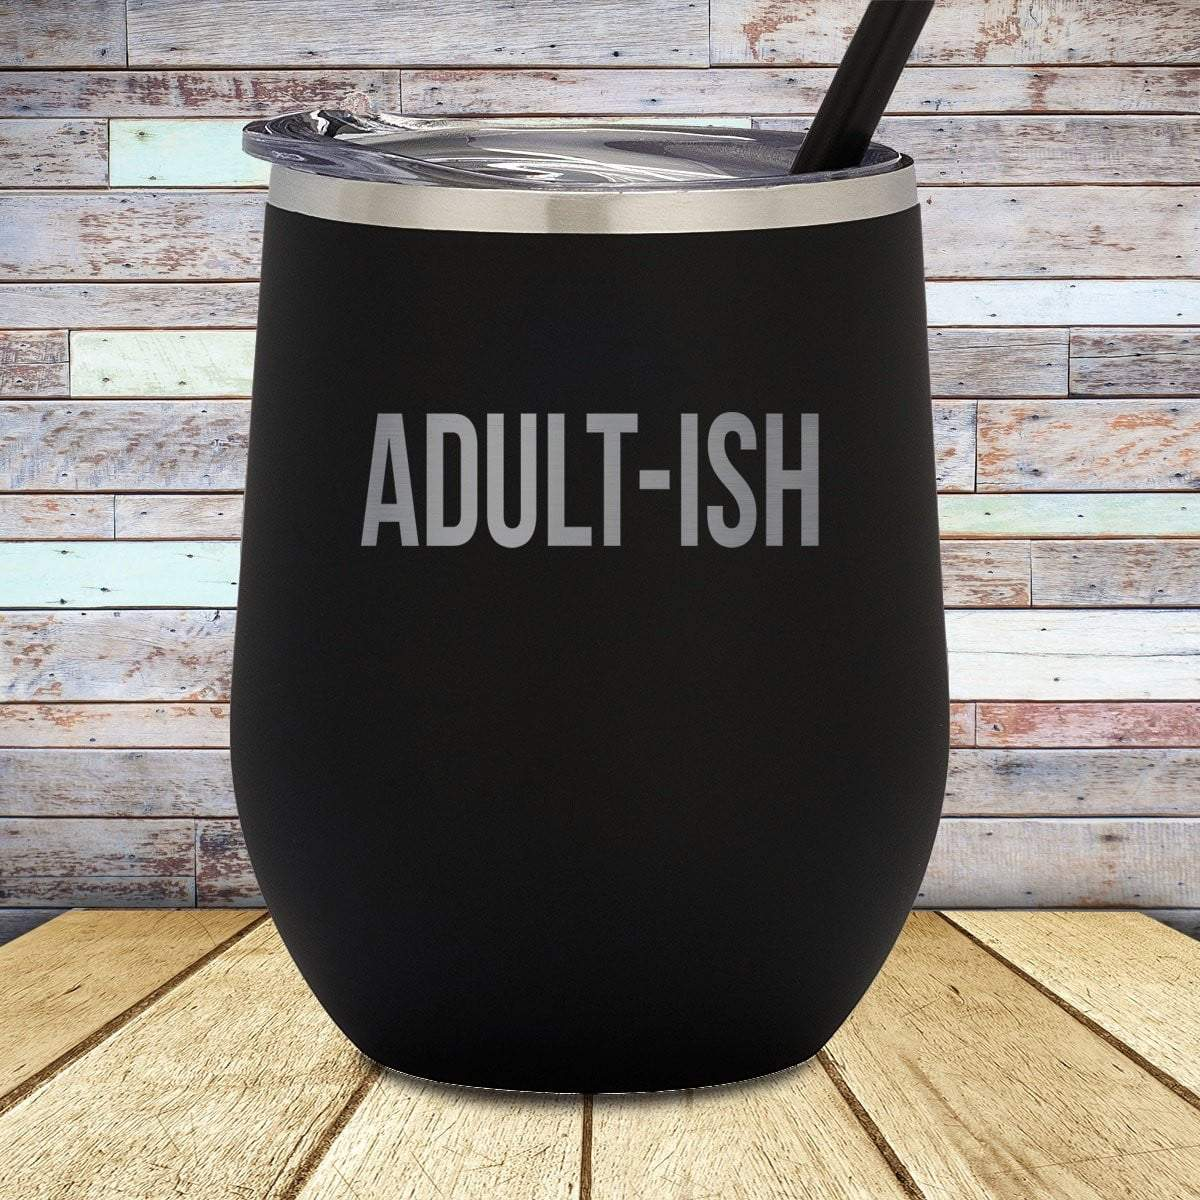 Adult-ish Stemless Wine Cup